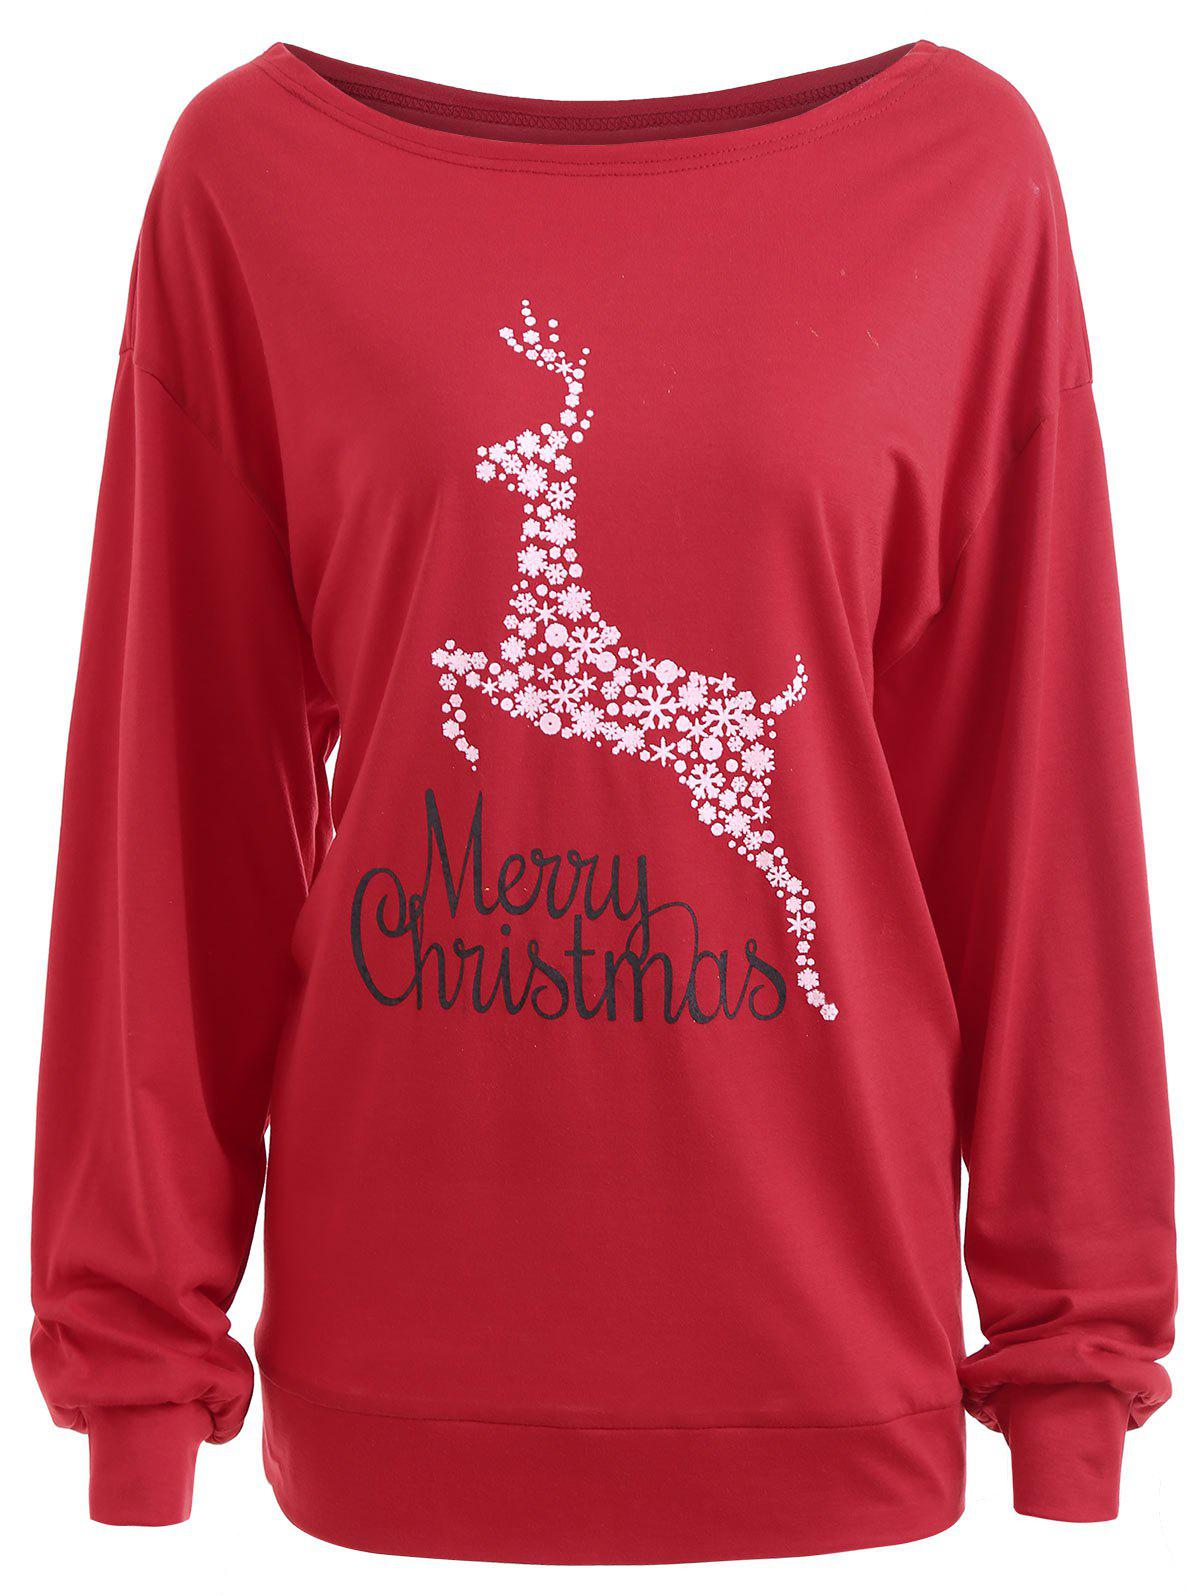 Plus Size Merry Christmas Deer Graphic T-shirtWOMEN<br><br>Size: 2XL; Color: RED; Material: Cotton Blends,Polyester; Shirt Length: Regular; Sleeve Length: Full; Collar: Convertible Collar; Style: Casual; Season: Fall,Winter; Pattern Type: Animal,Floral; Weight: 0.3100kg; Package Contents: 1 x Tee;